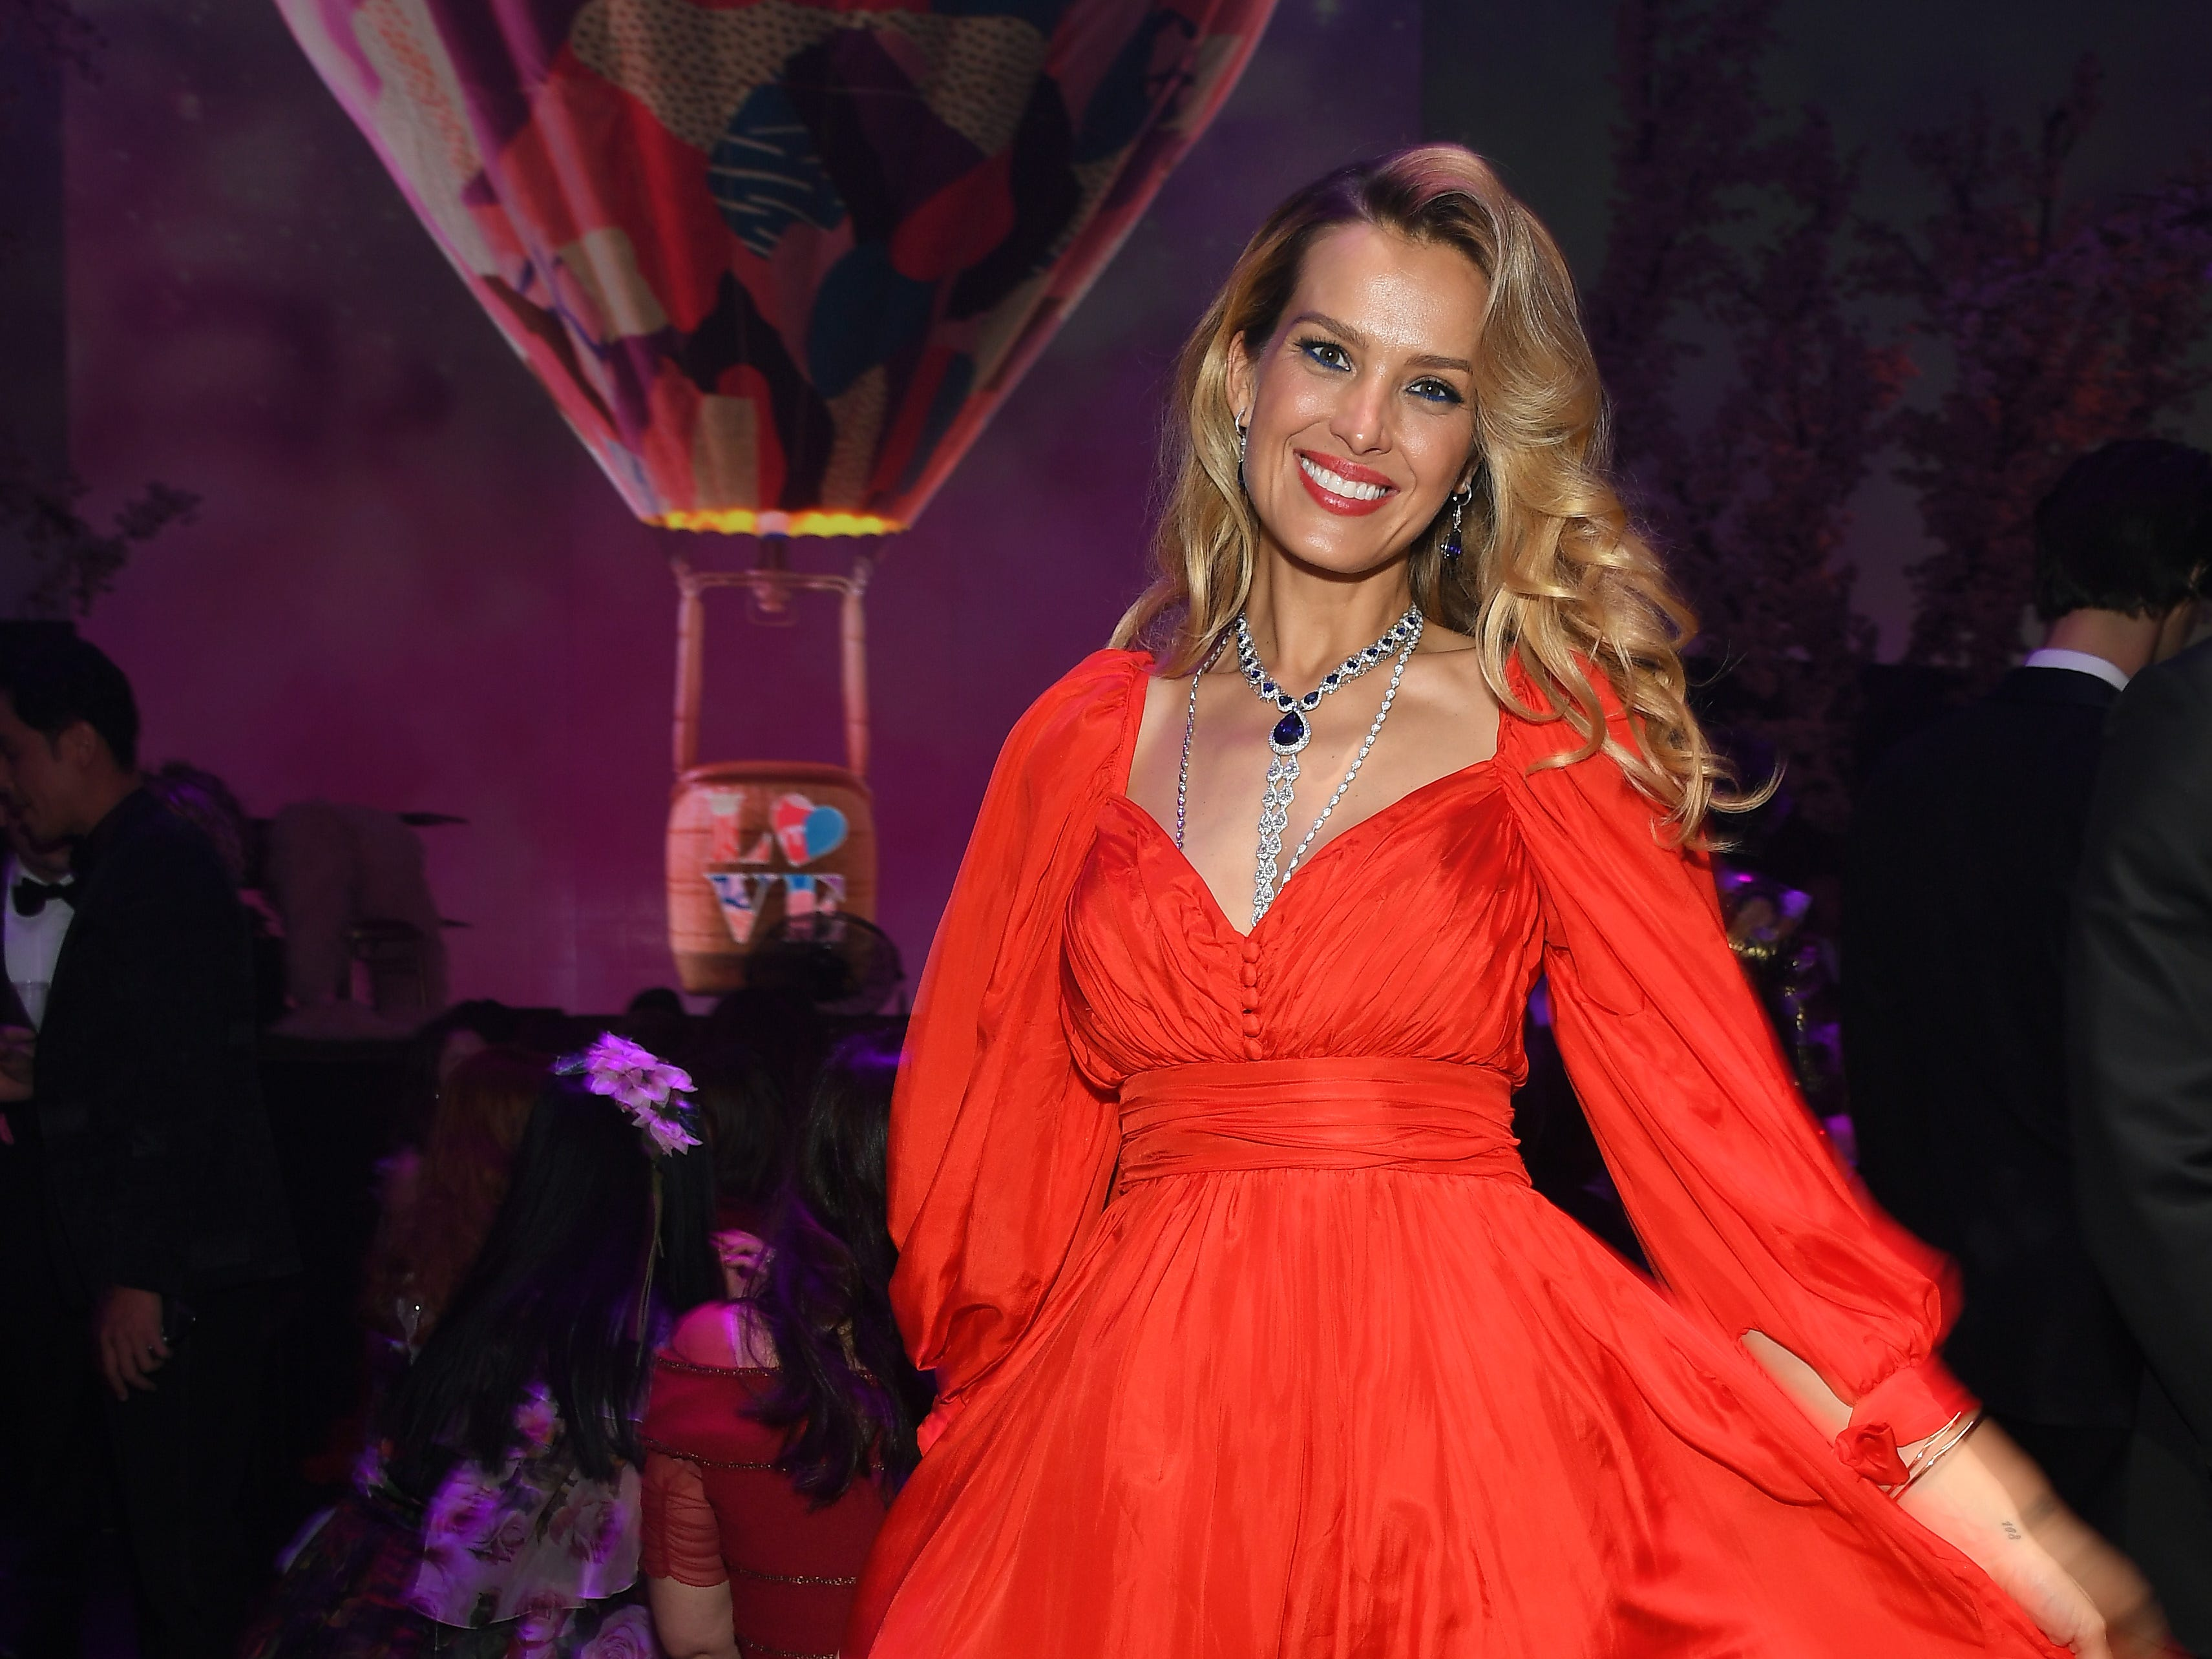 Petra Nemcova attends the Chopard Love Night dinner on May 17, 2019 in Cannes, France.